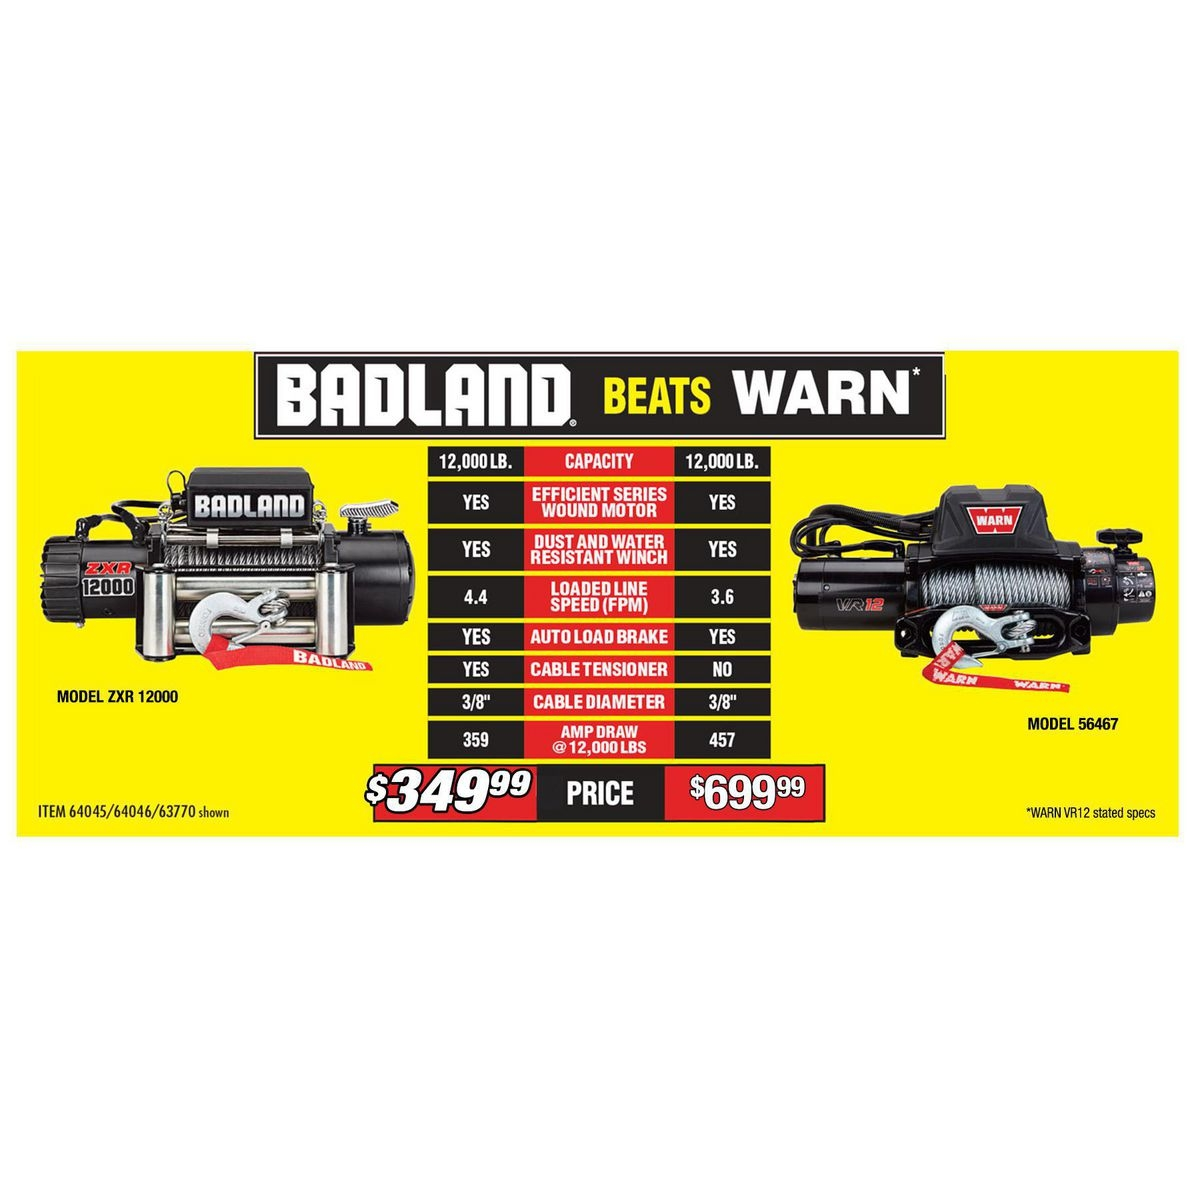 WRG-3497] Harbor Freight 12 000 Lb Winch Wiring Diagram on